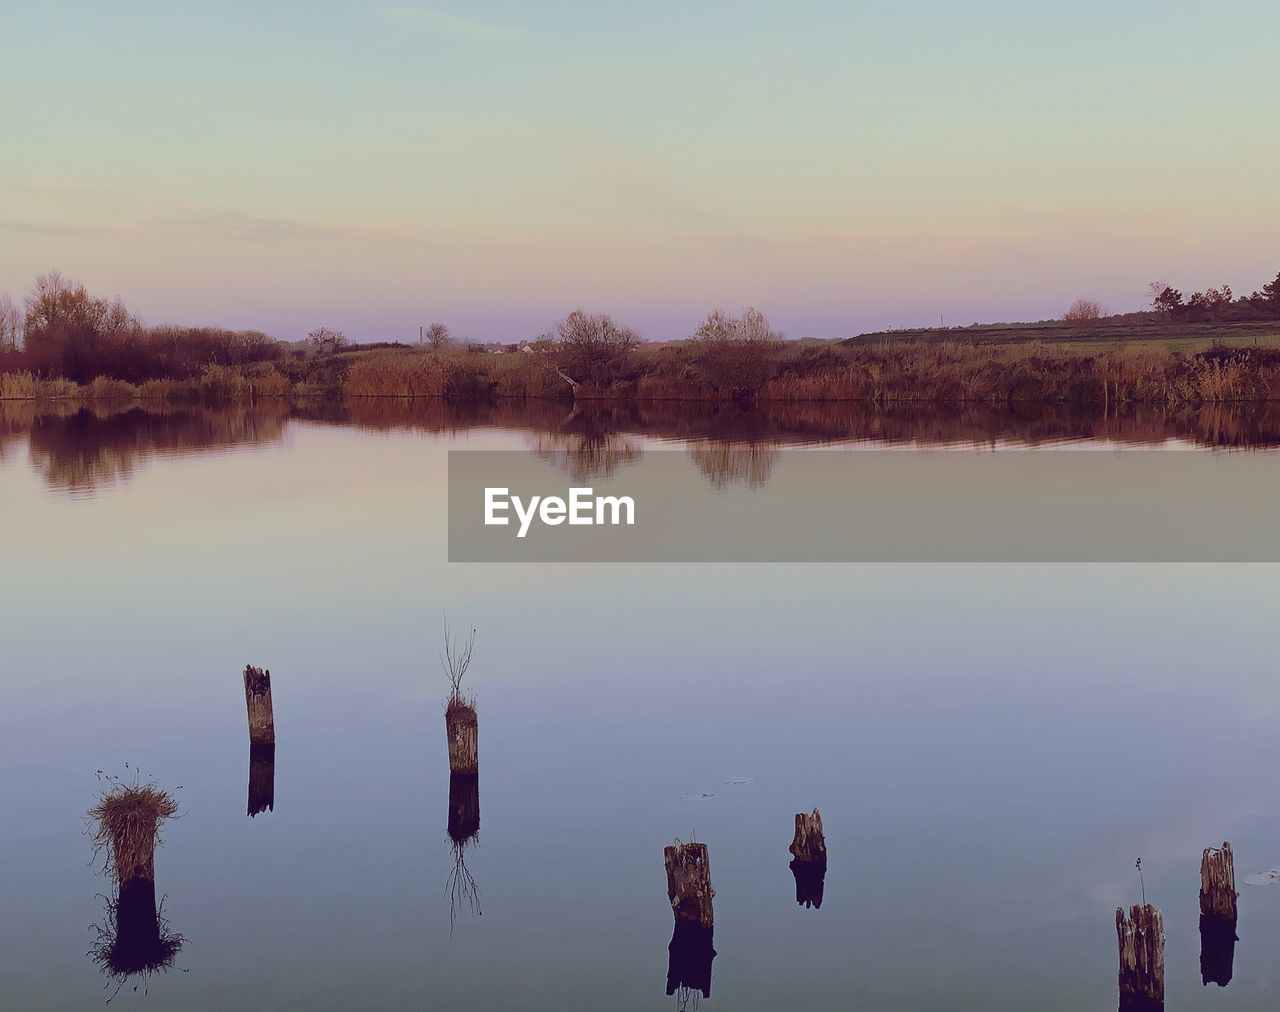 water, sky, reflection, lake, tranquility, tranquil scene, beauty in nature, nature, no people, sunset, scenics - nature, waterfront, non-urban scene, tree, plant, idyllic, outdoors, standing water, remote, wooden post, reflection lake